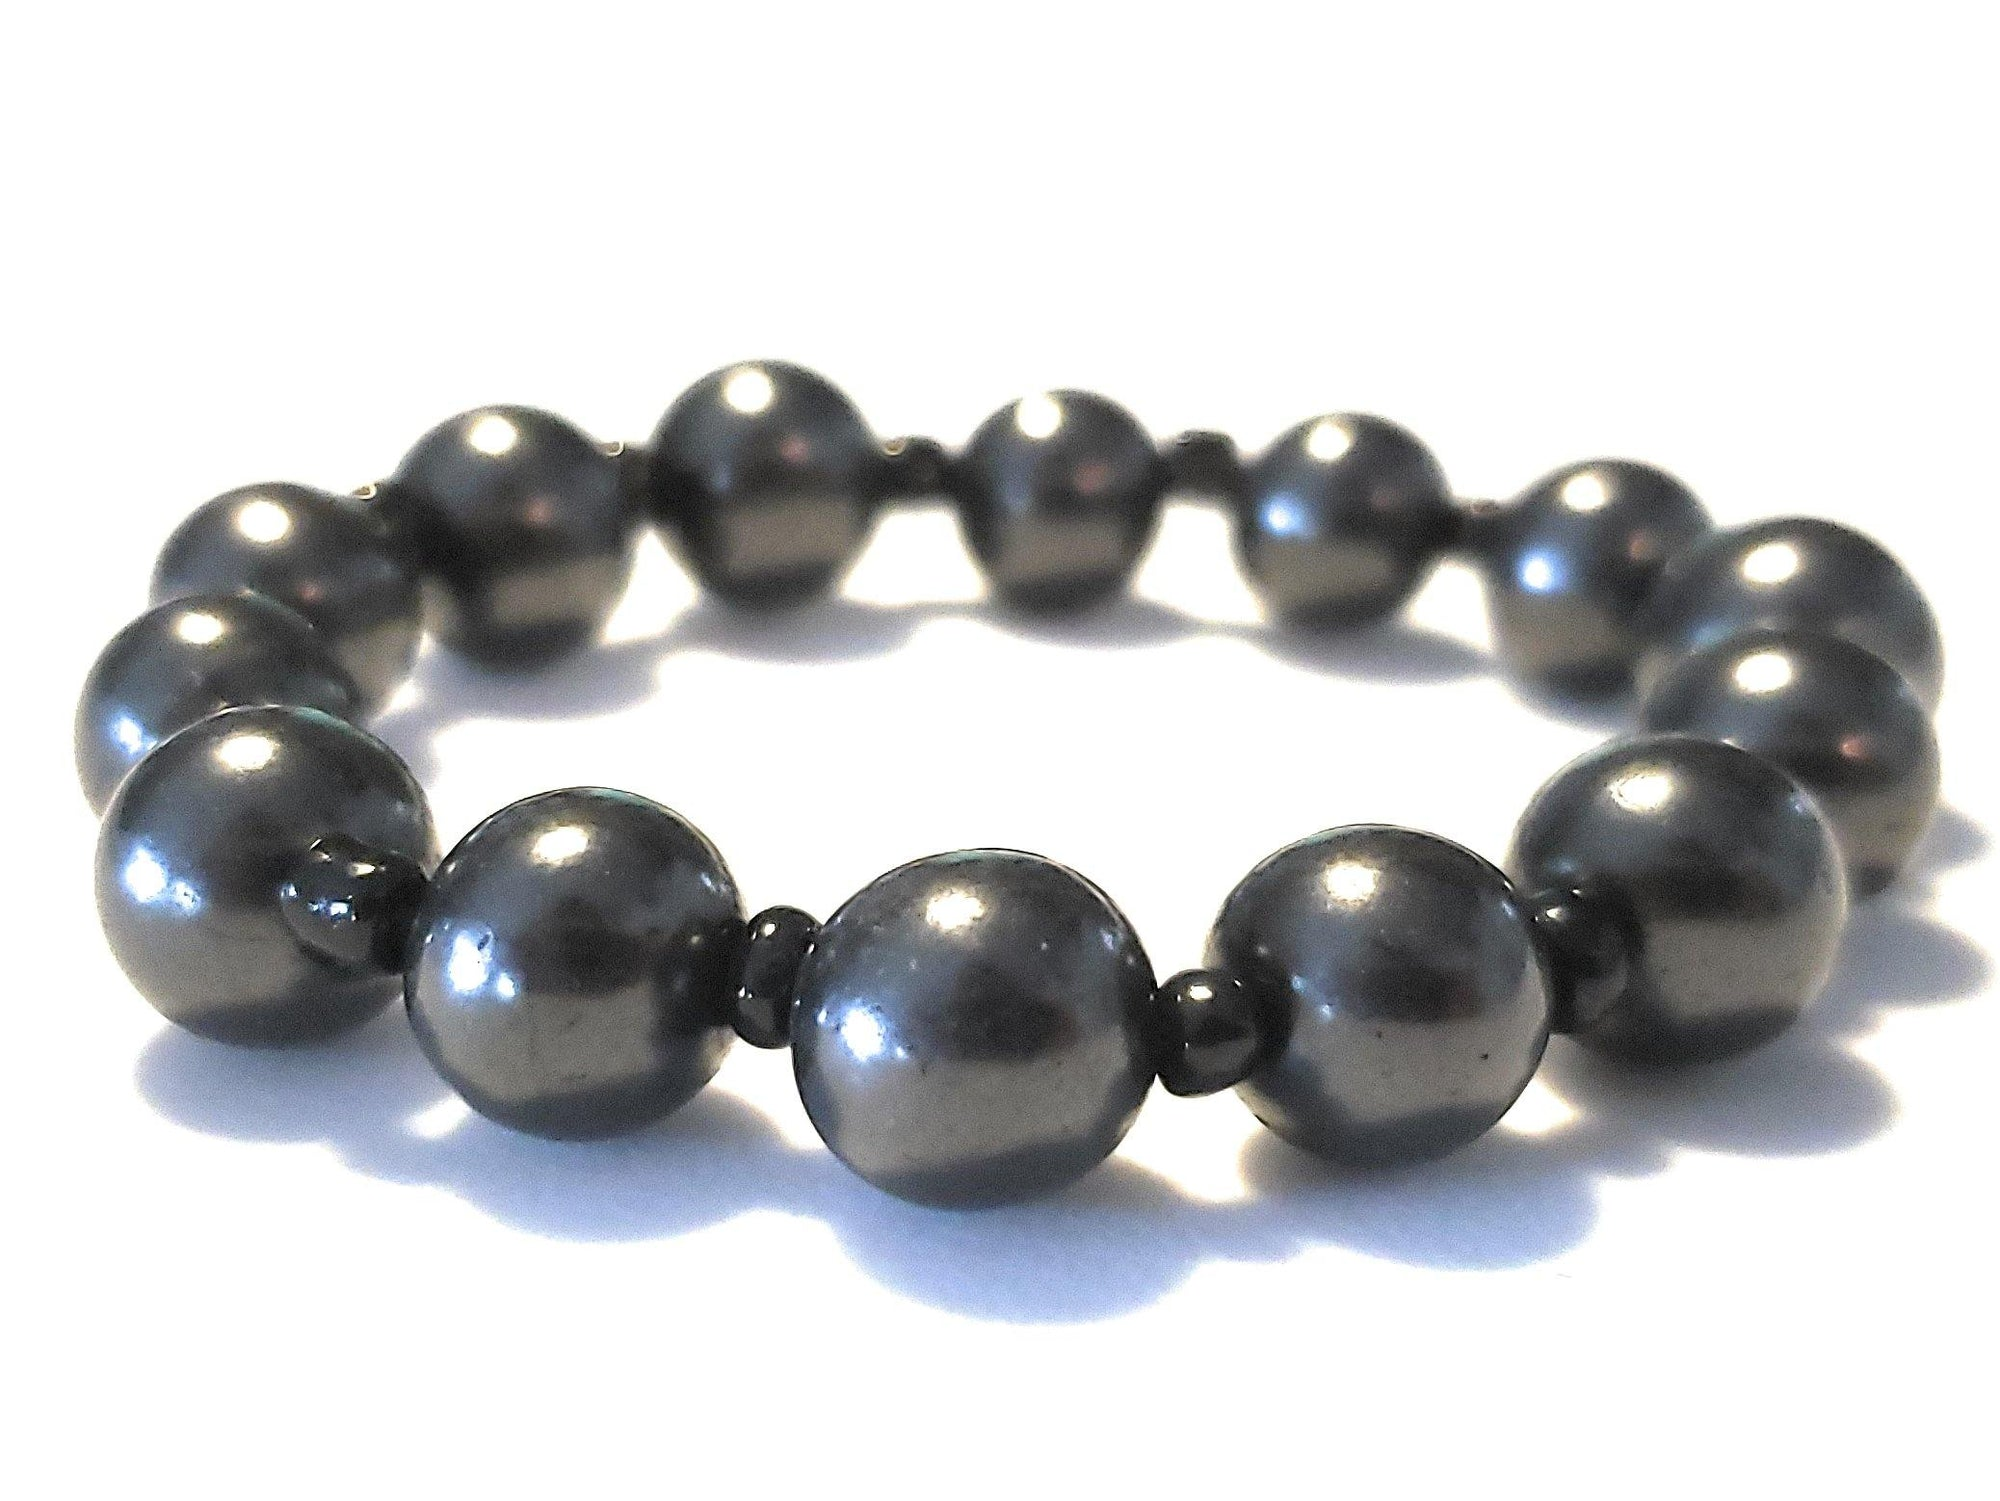 Shungite Bracelet - 10mm Multi-Beads, Adult - Karelia Creations